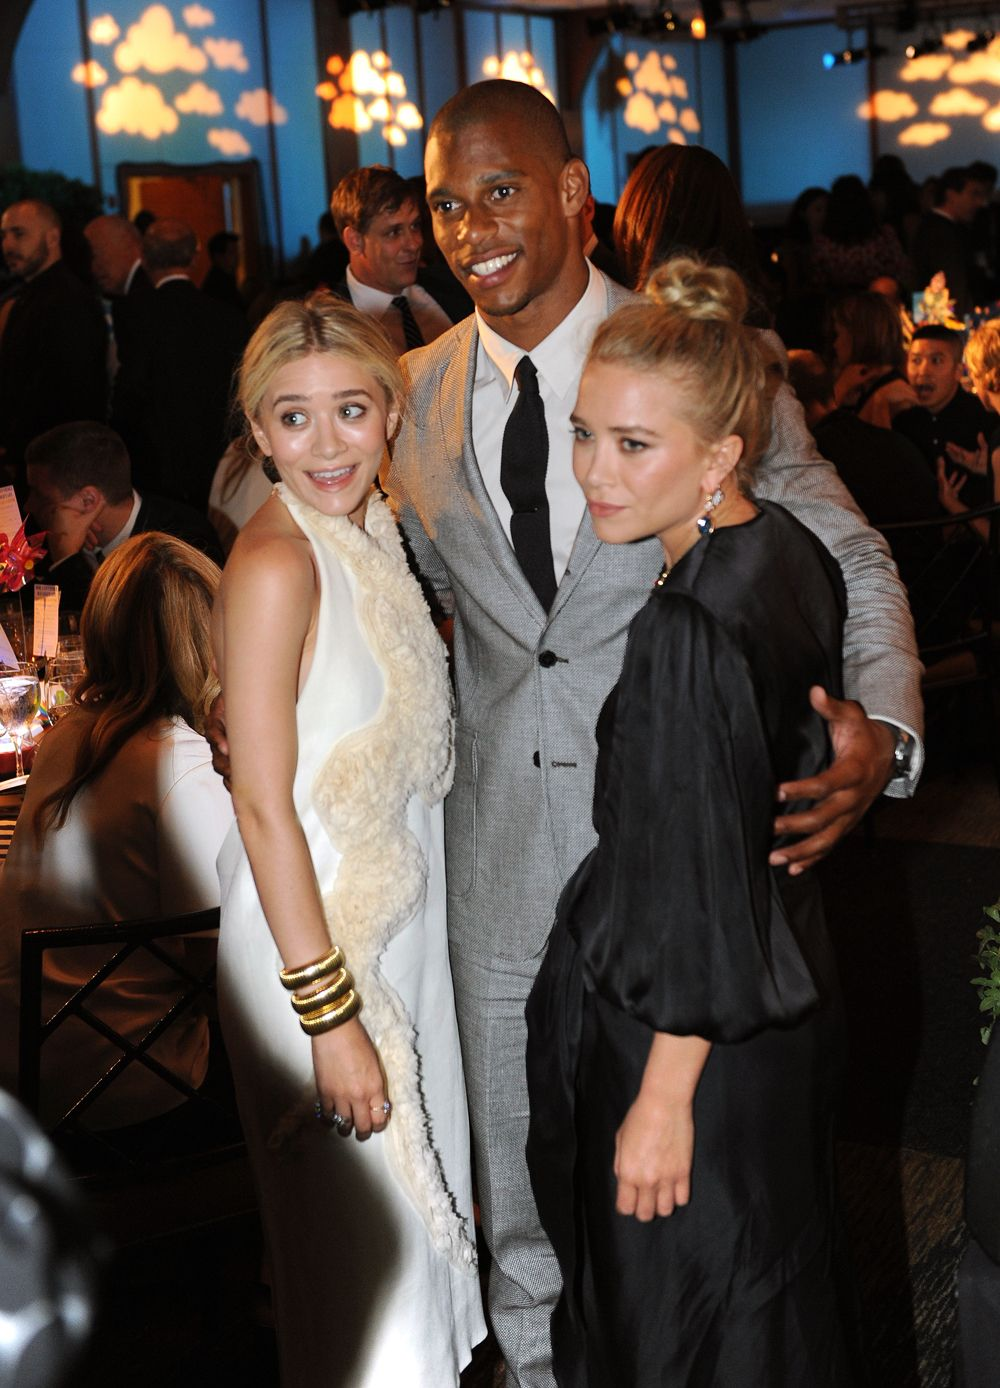 Honorees Victor Cruz and Mary Kate & Ashley Olsen at The